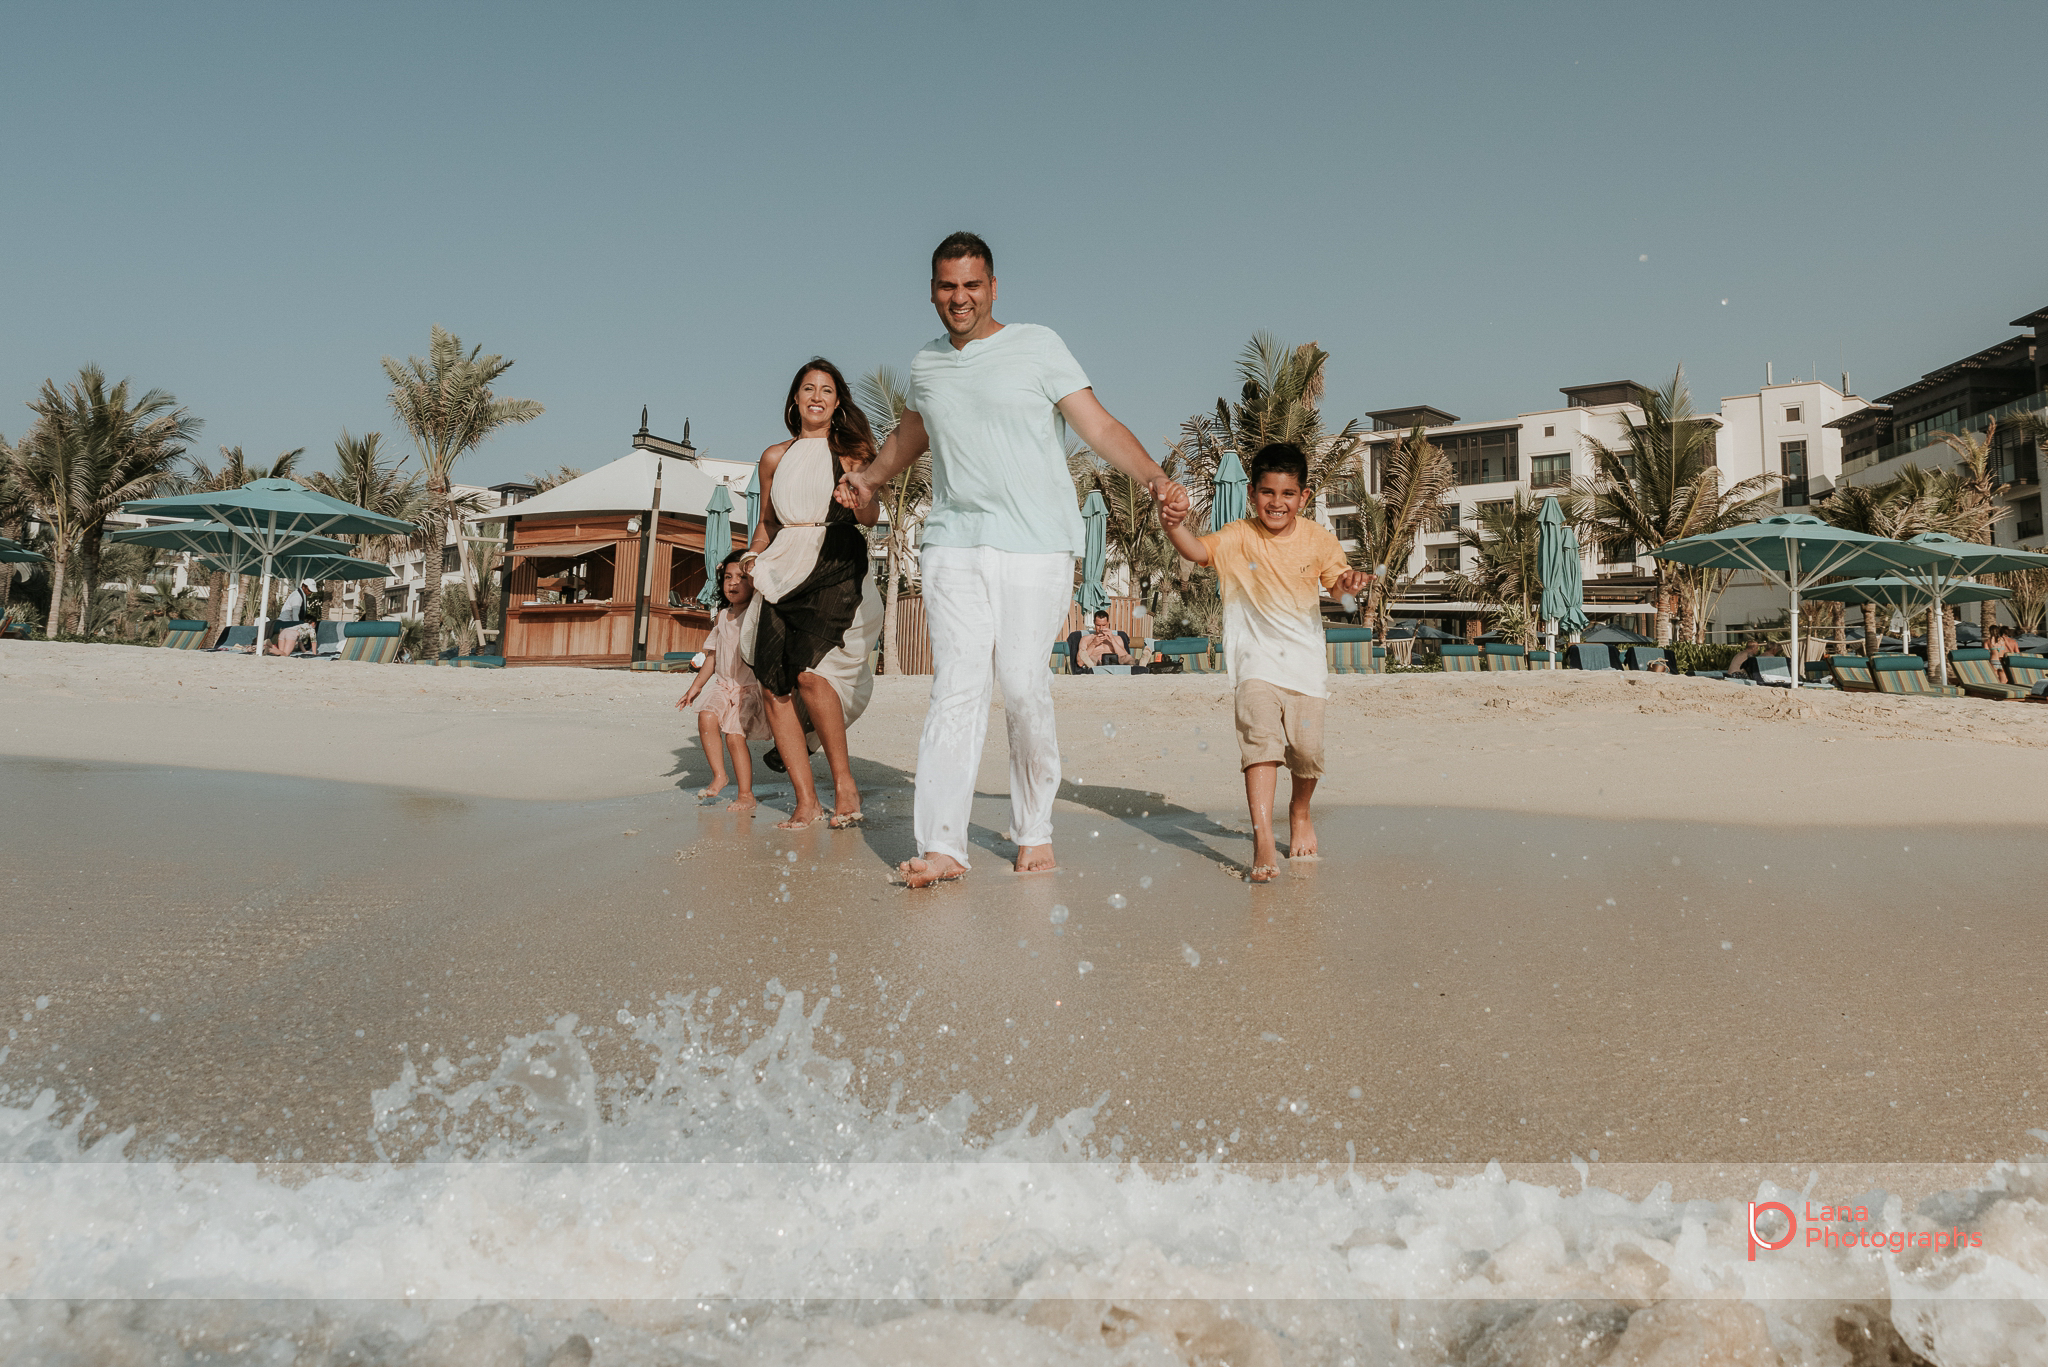 Lana Photographs Dubai Family Photography beach photoshoot family running into the water